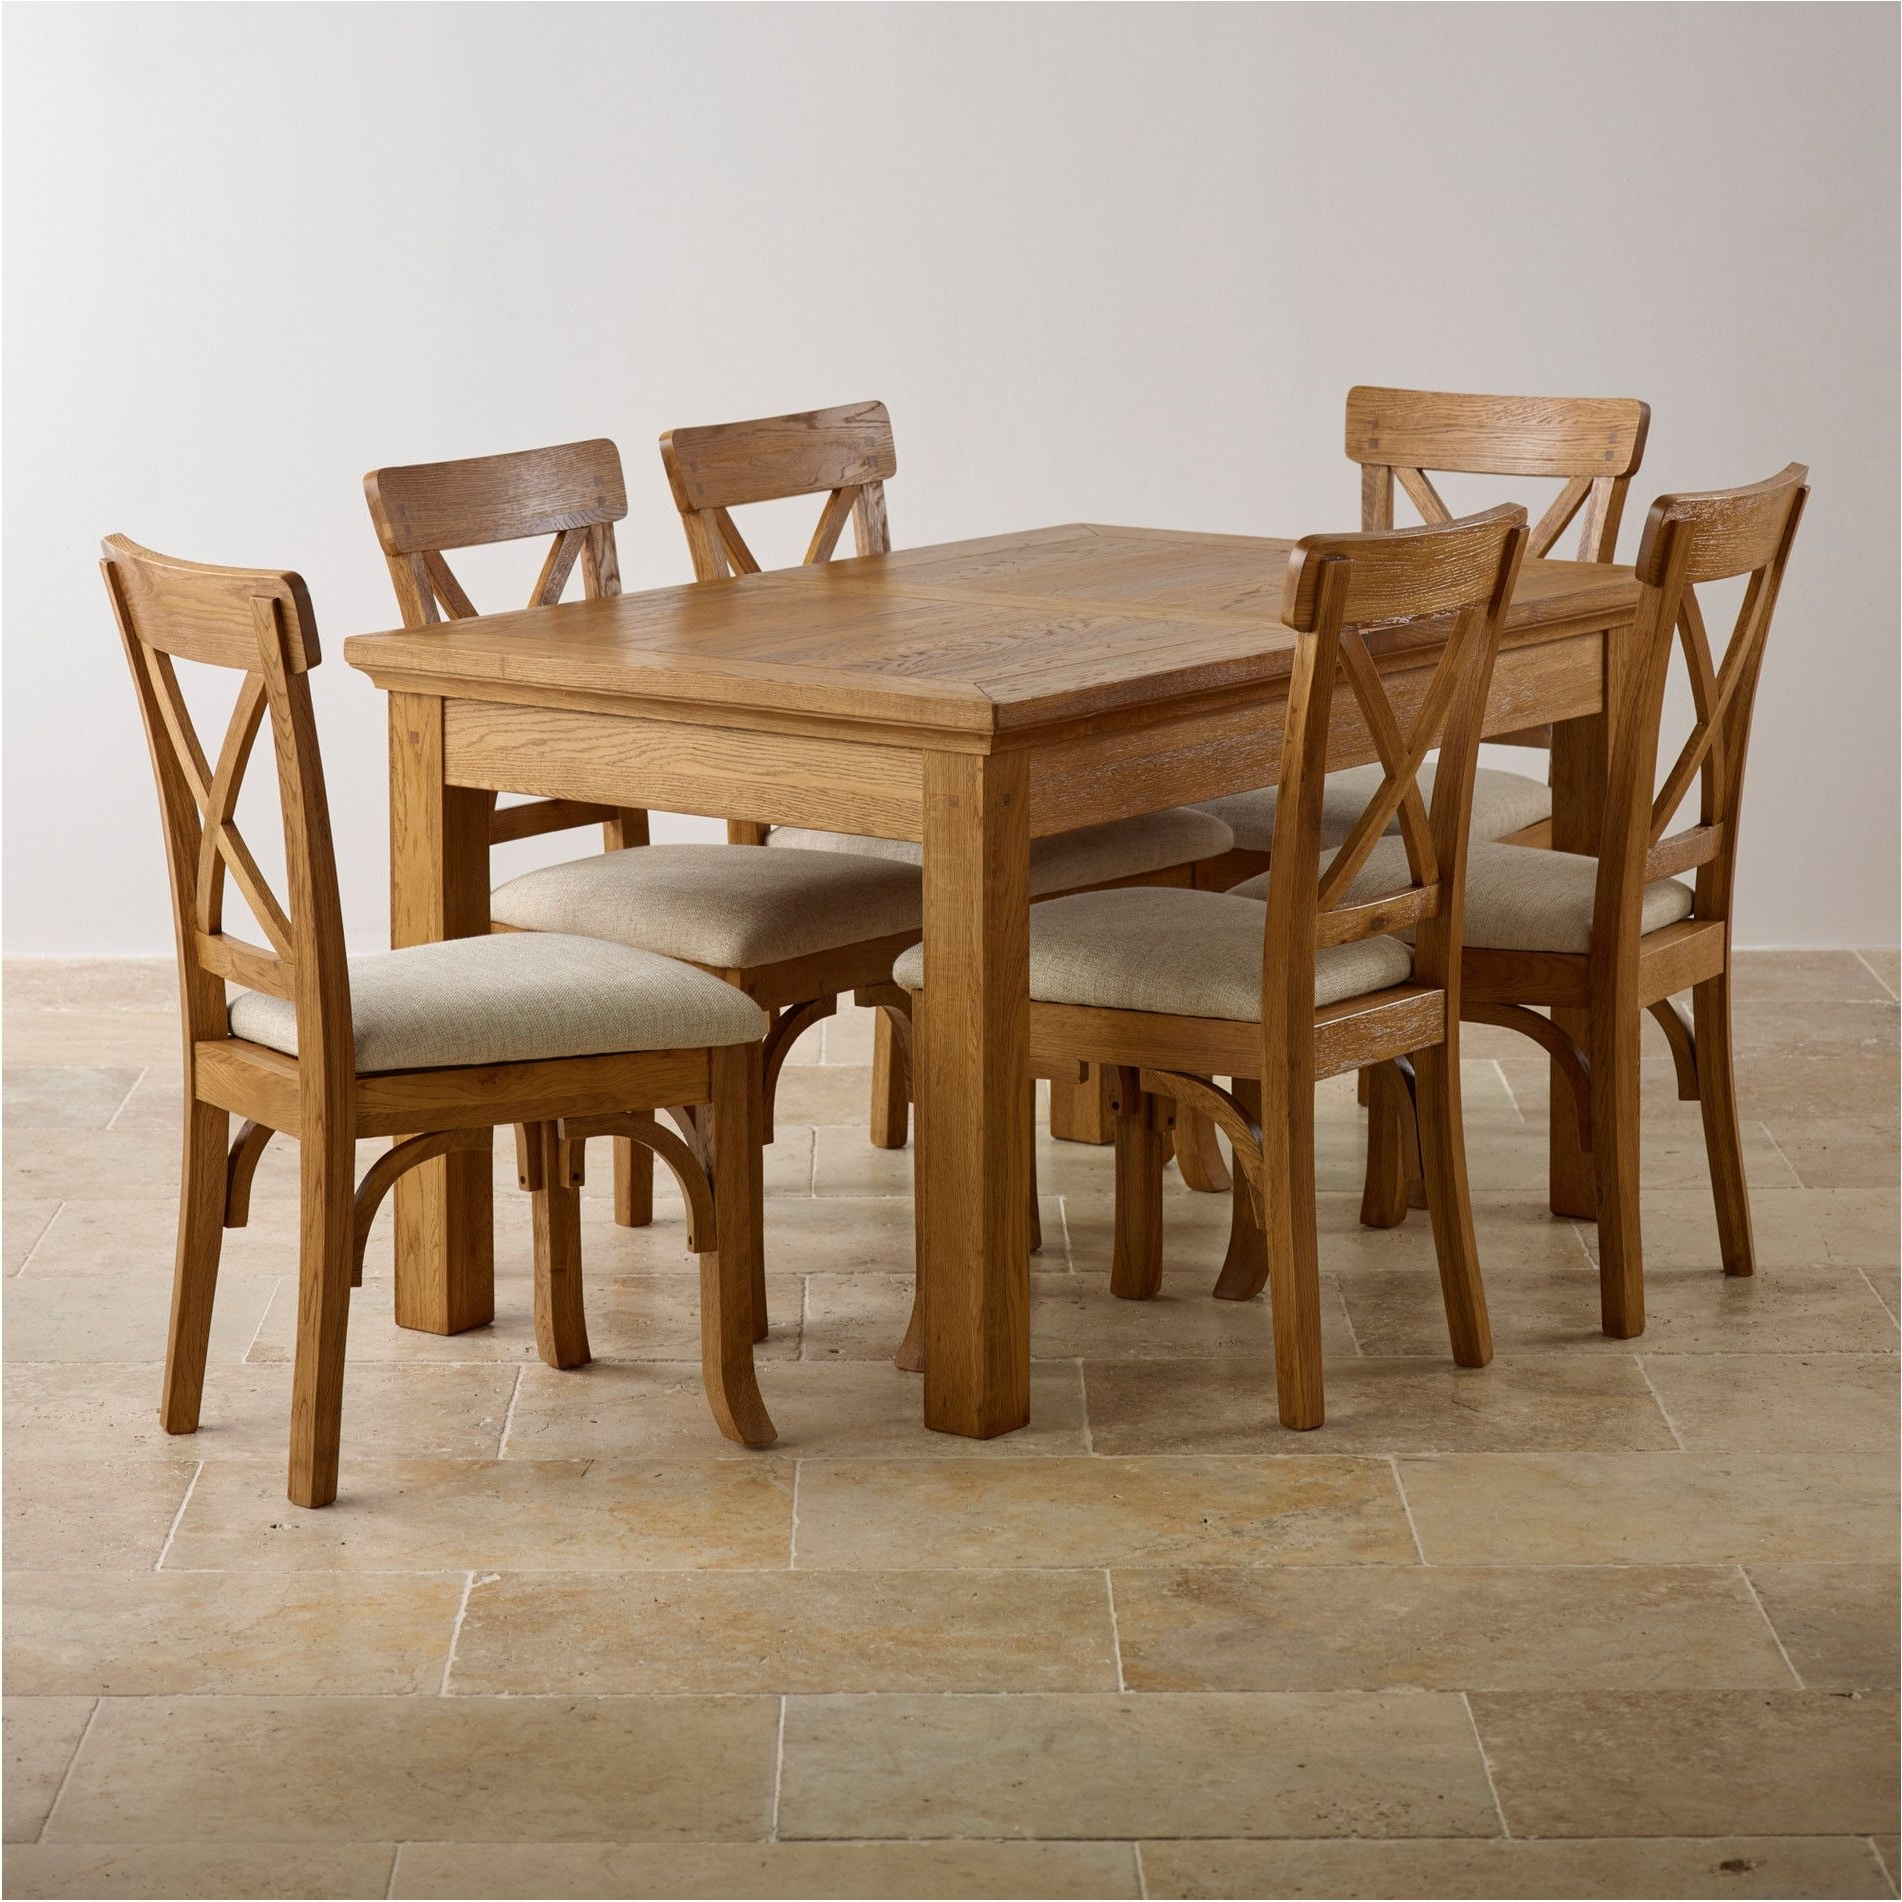 Great Top 72 Wicked Wooden Table Dining Room Chairs Solid Oak Intended For Most Recently Released Oval Oak Dining Tables And Chairs (View 8 of 25)